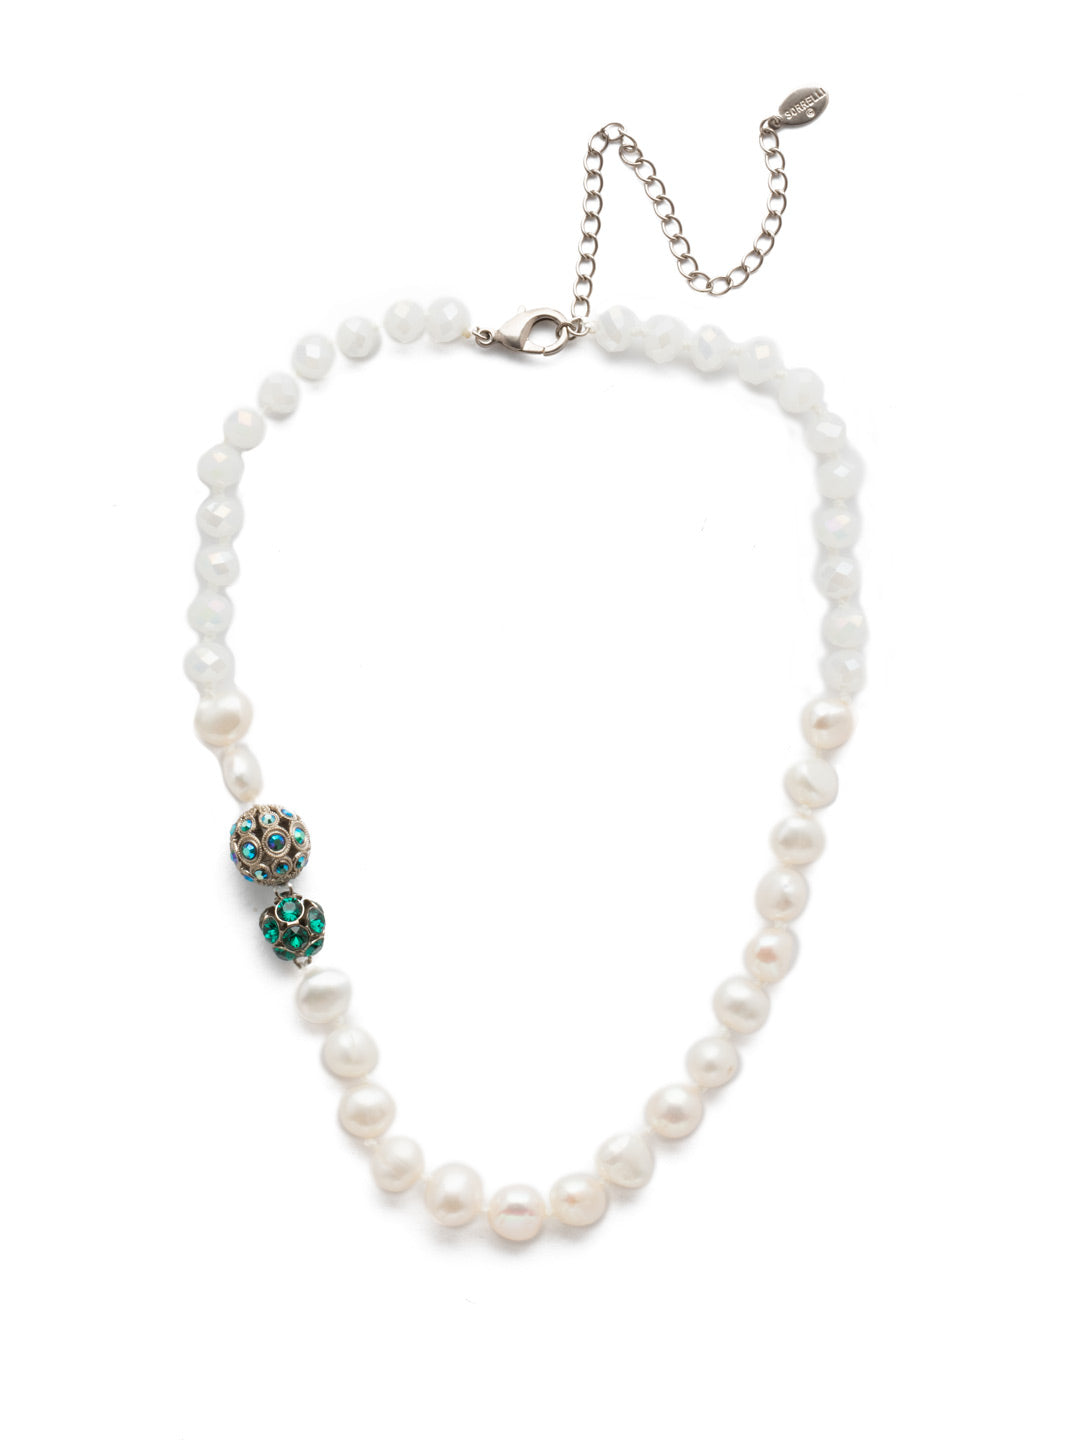 Cailey Tennis Necklace - NEF20ASSNM